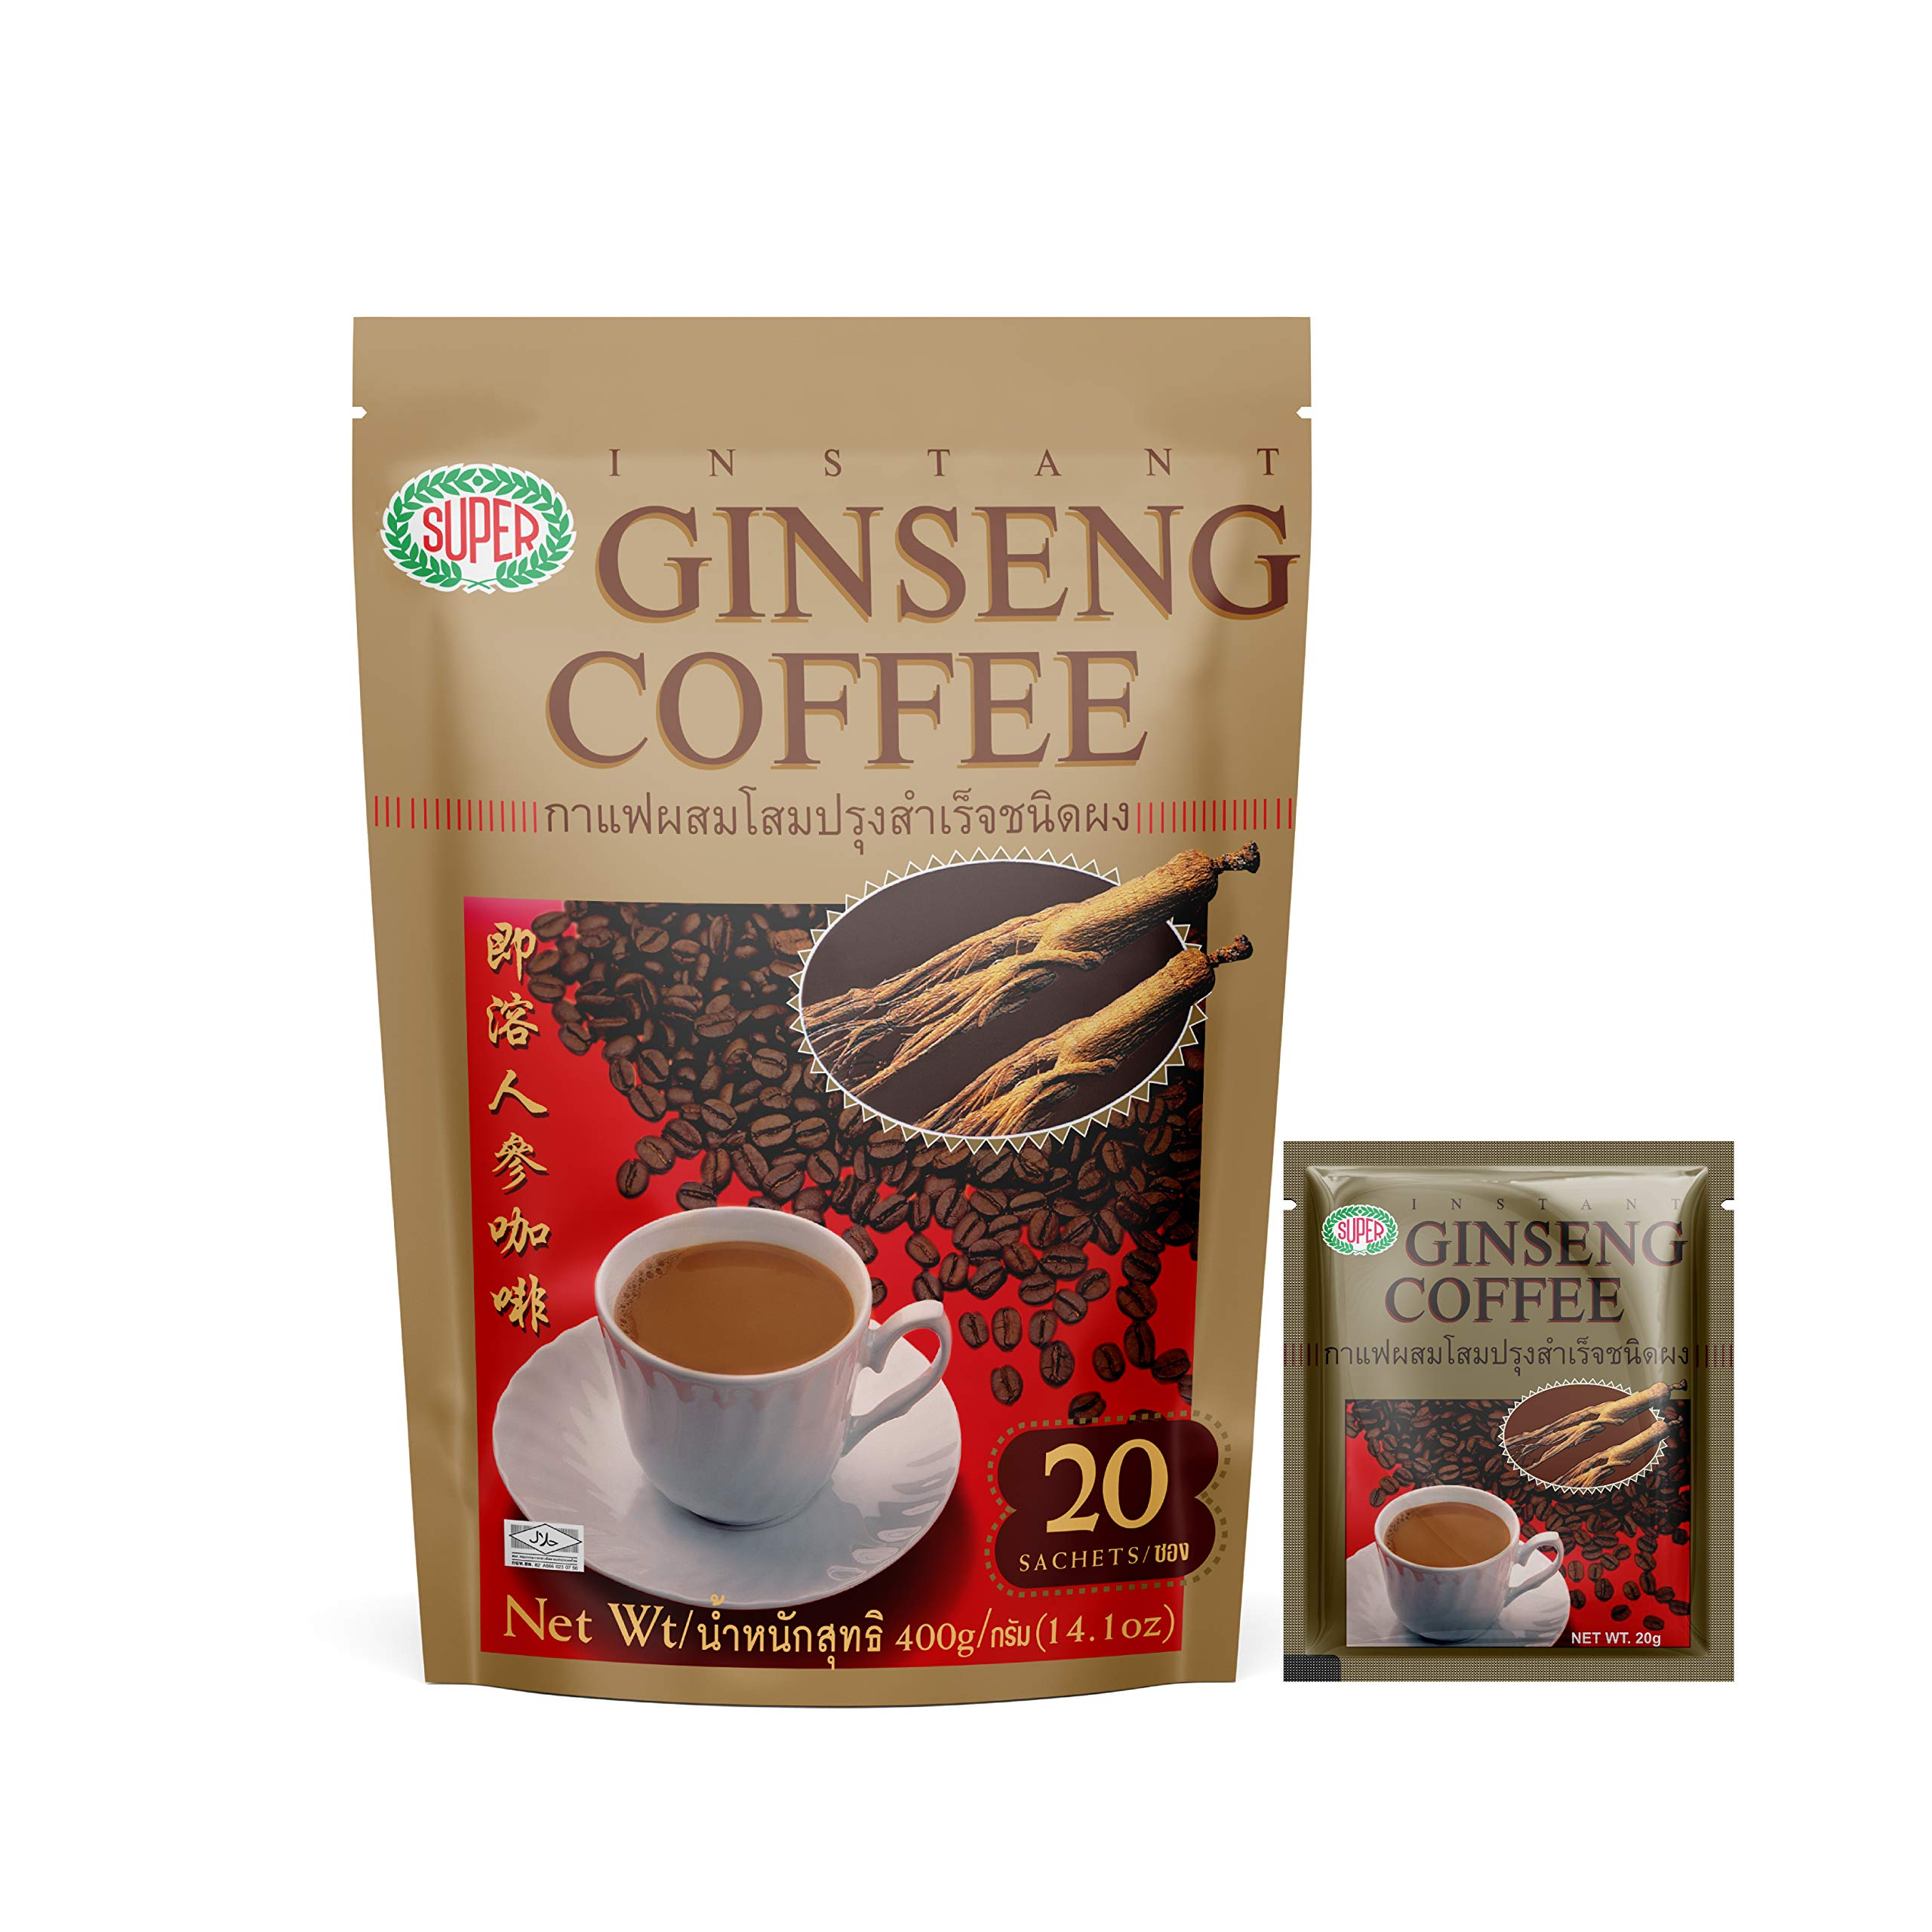 SUPER Ginseng Coffee